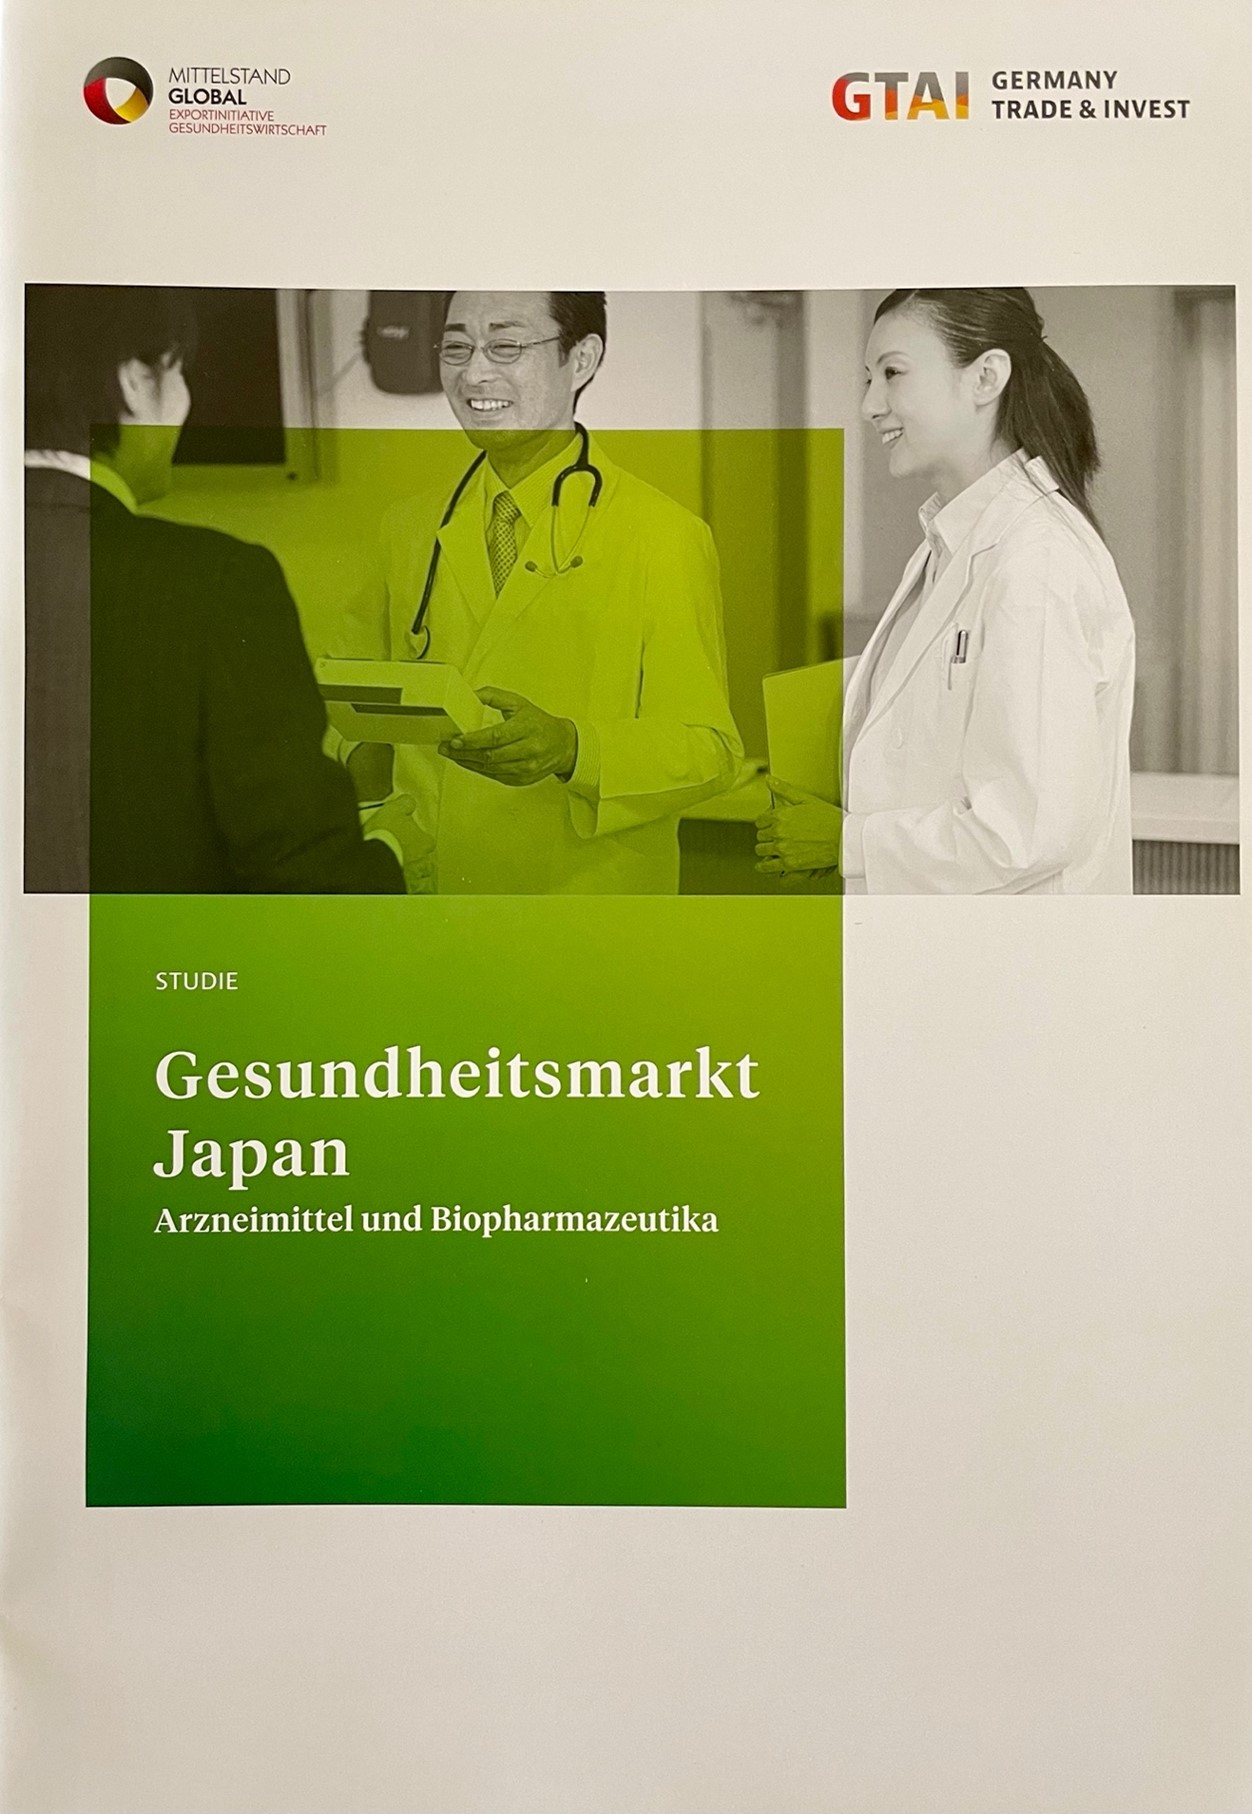 Report in German (2019, 23 pages) on the Japanese market of drugs and biopharmaceuticals which includes regulatory issues, pricing, marketing, cultural aspects and main actors. The brochure can be downloaded from German Trade and Invest (GTAI) through The brochure can be downloaded for free from German Trade and Invest (GTAI) through https://www.exportinitiative-gesundheitswirtschaft.de/EIG/Redaktion/DE/Publikationen/PDF/gesundheitsmarkt-japan.html